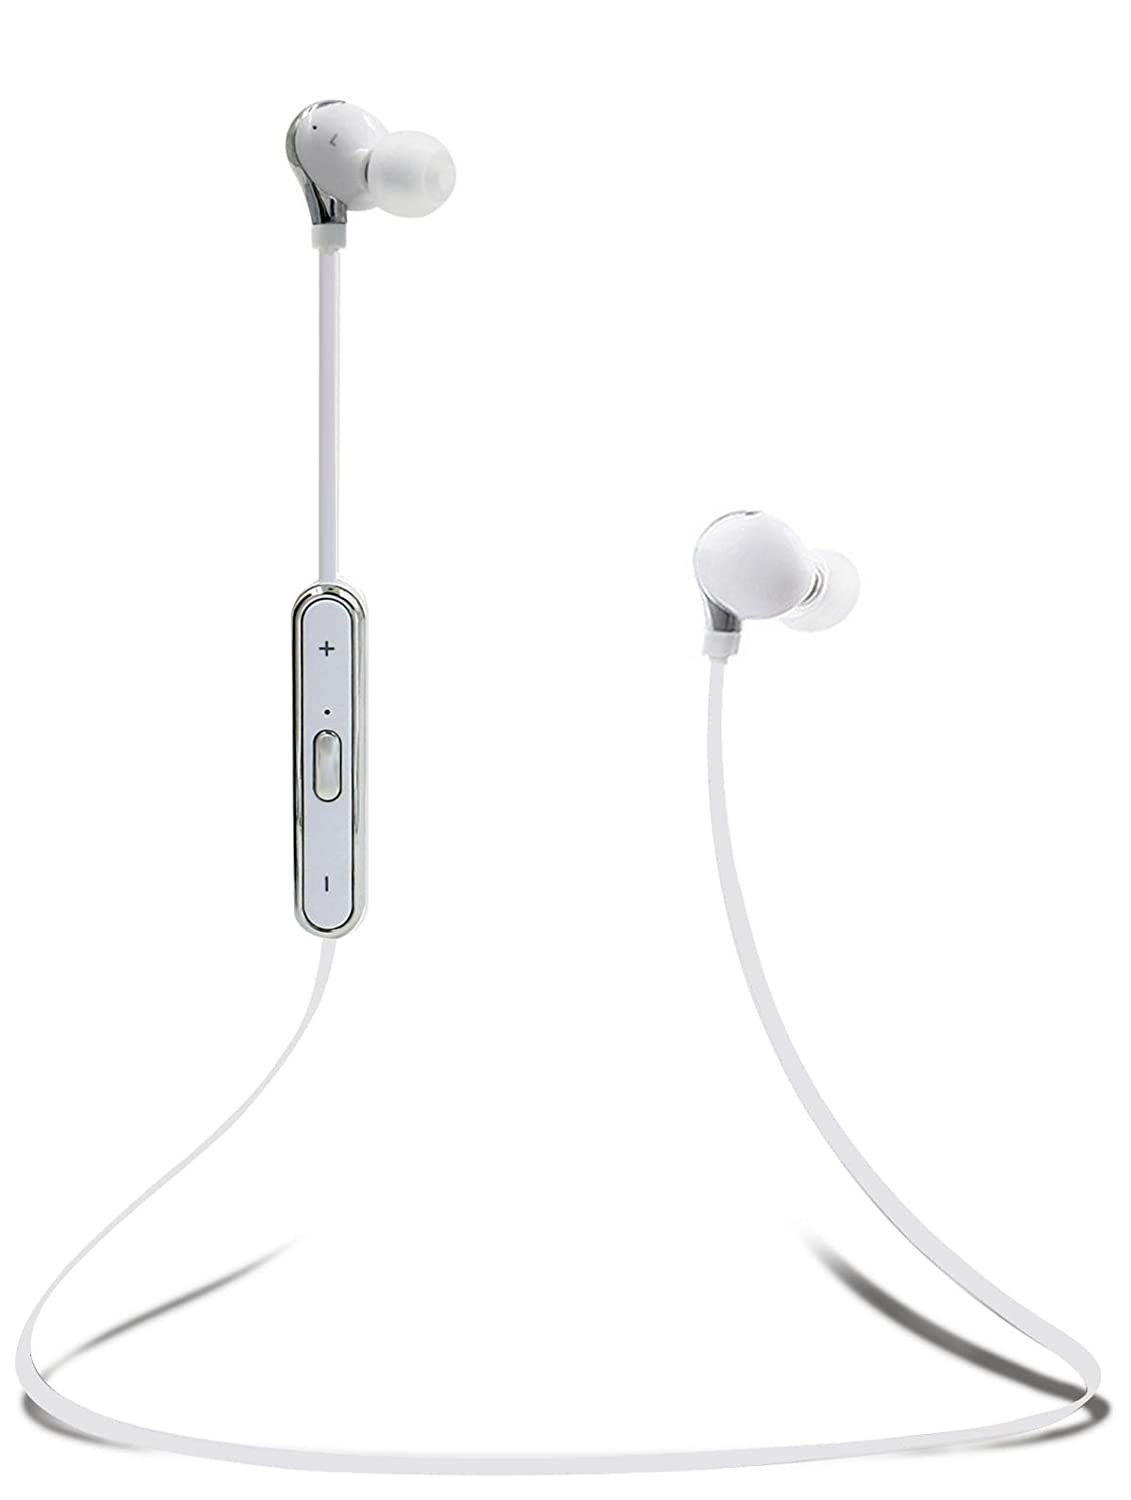 Bluetooth earphones for tv listening - earphones for iphone and ipad